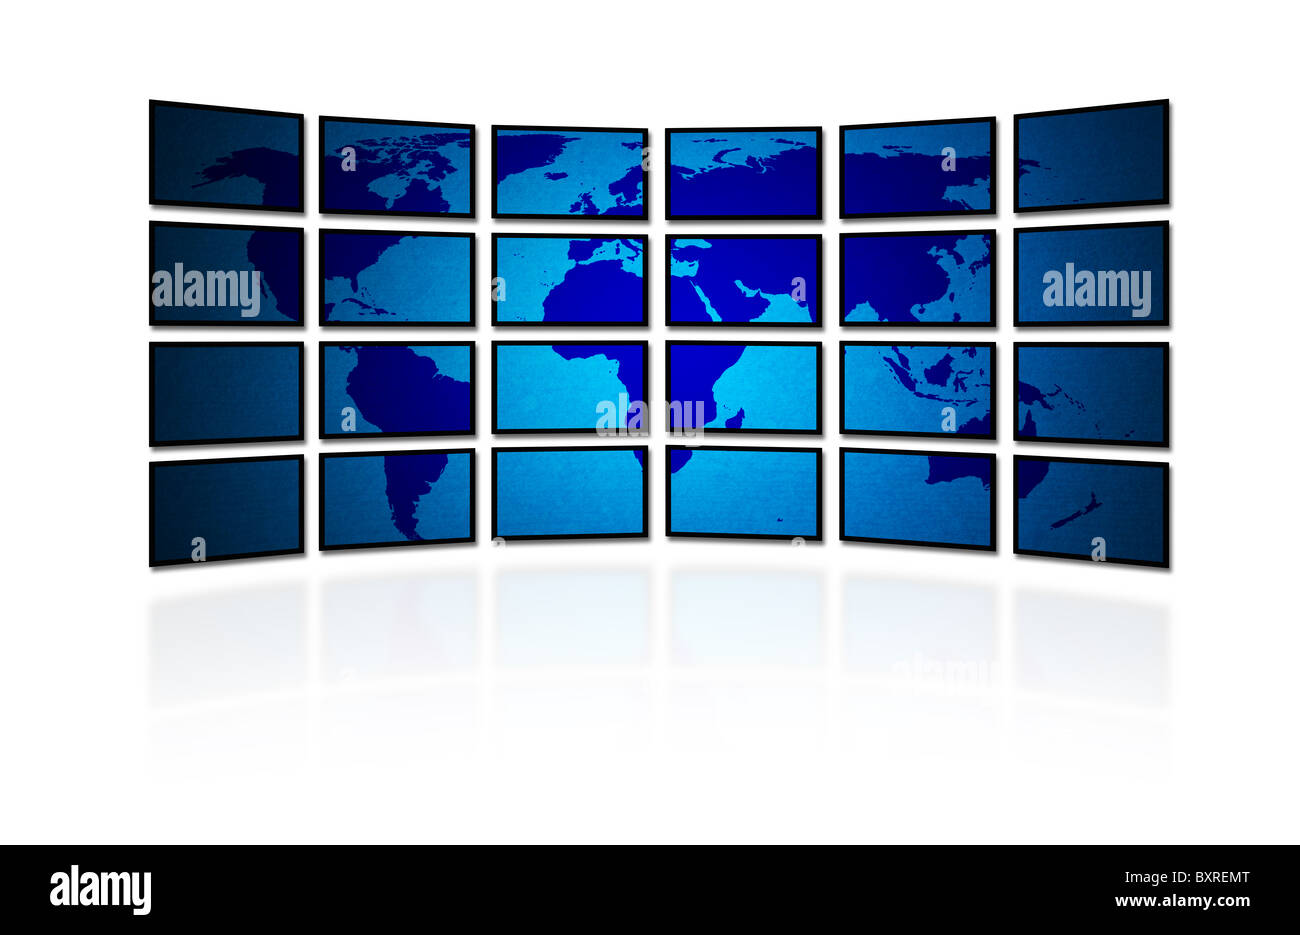 World map on digital tv wall with shadows and reflection stock world map on digital tv wall with shadows and reflection gumiabroncs